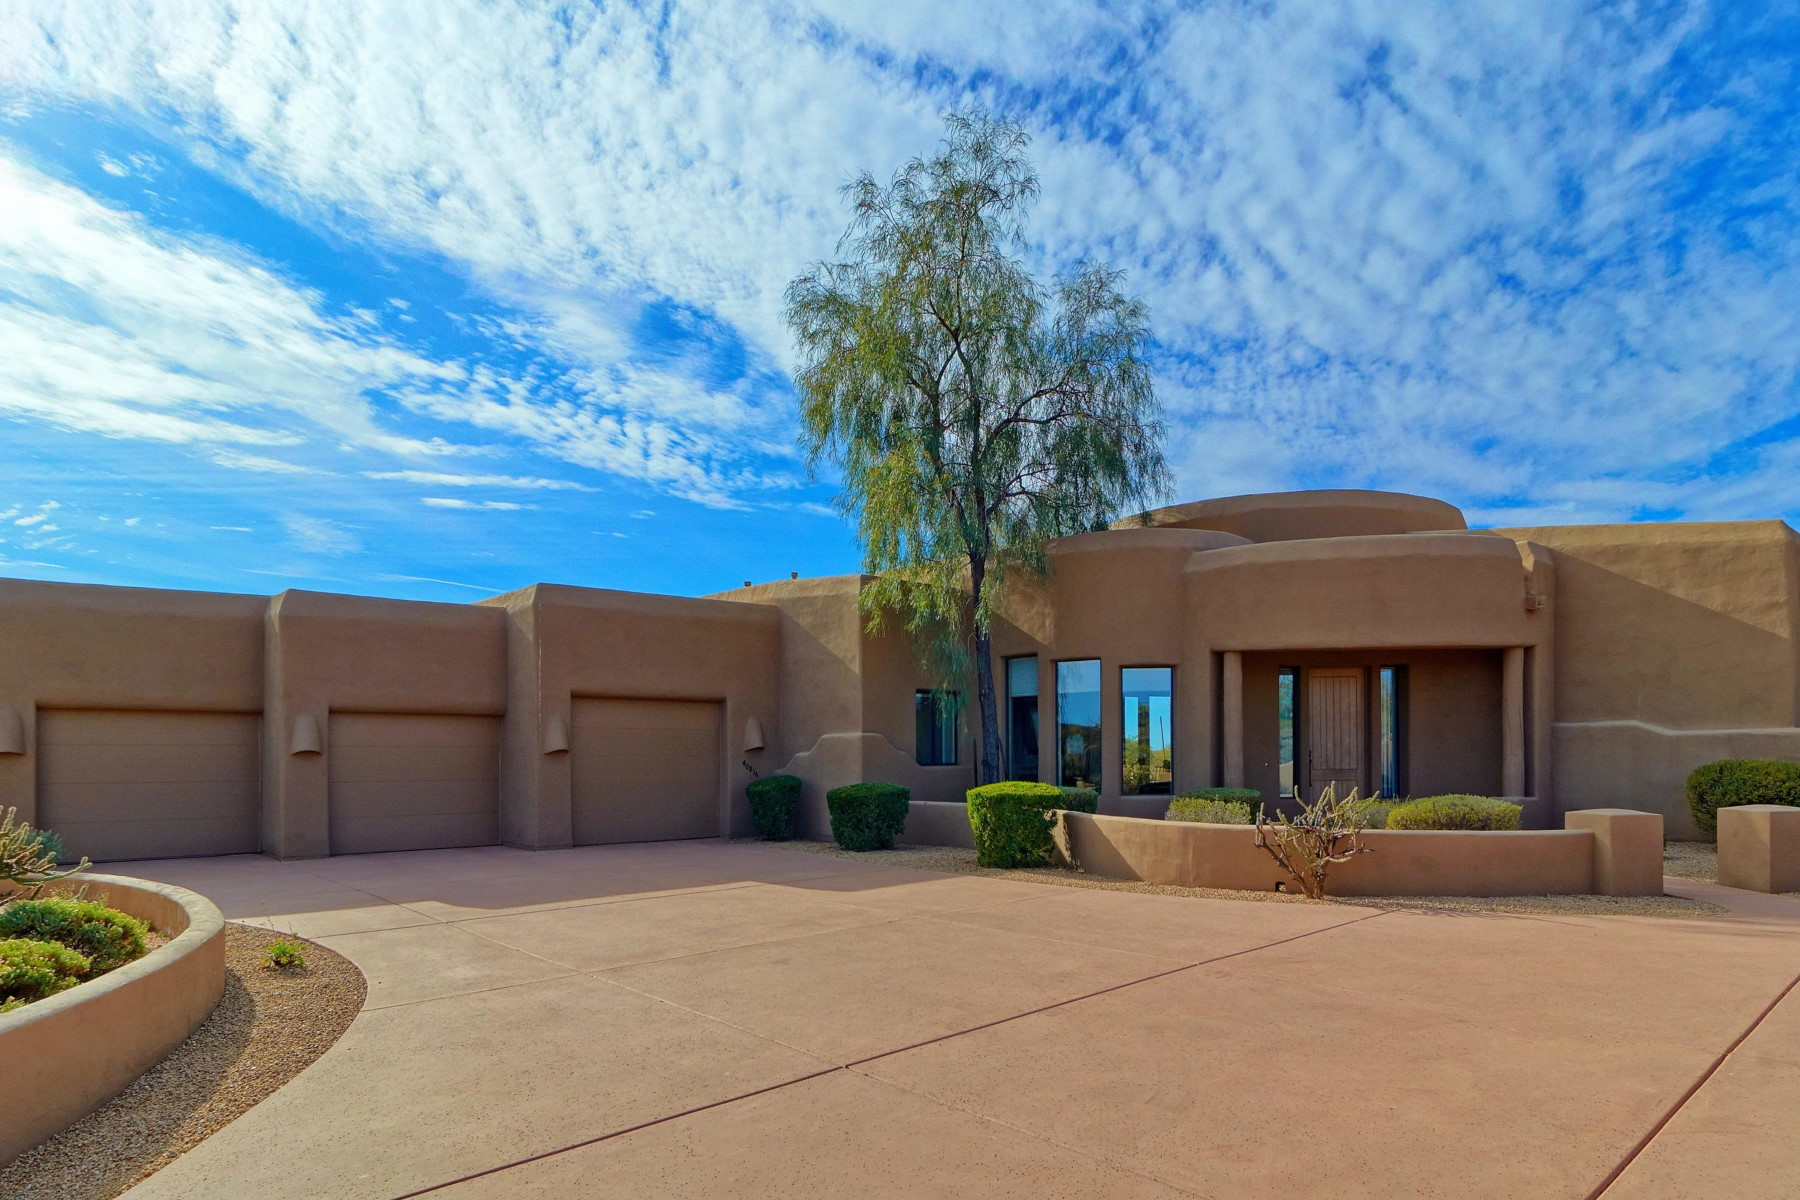 Single Family Home for Rent at Fabulous custom home in a private setting 40816 N 108TH WAY, Scottsdale, Arizona 85262 United States